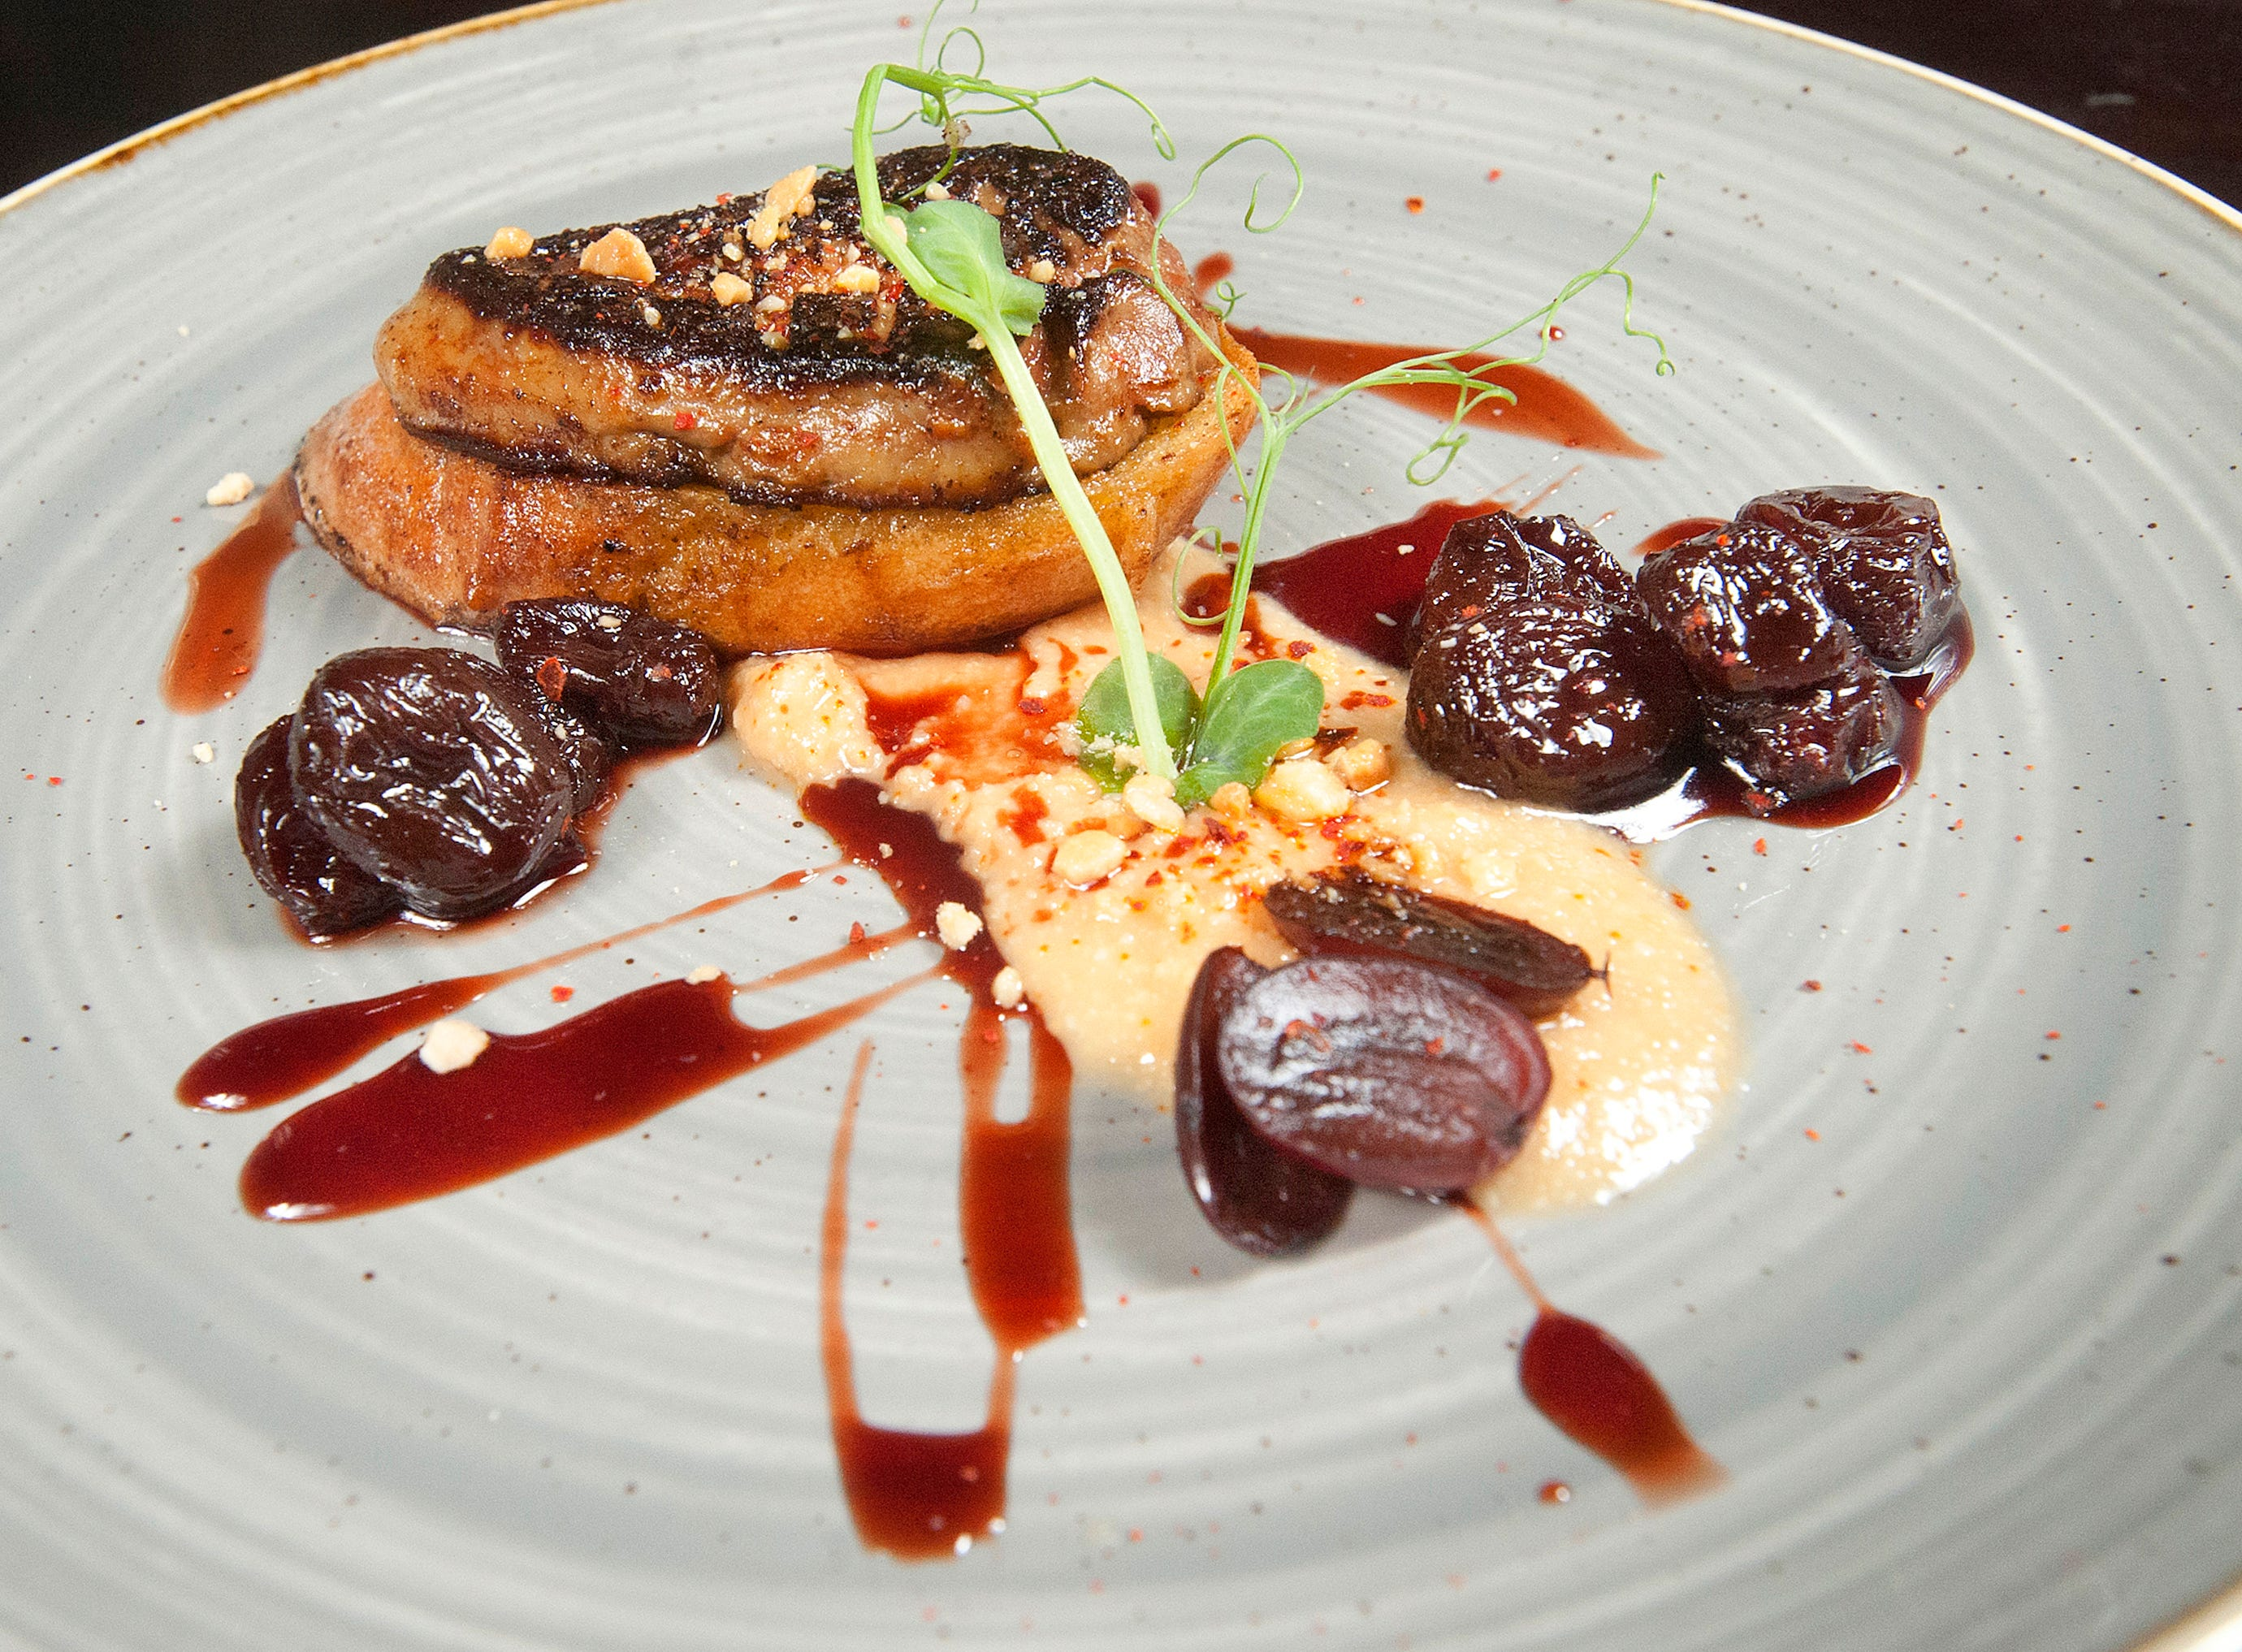 La Chasse Restaurant's Hudson Valley Fois Gras is served over a sliced Blue Dog baguette that has been dipped in black pepper creme anglais. The French toast sits atop a macron almond butter. The dish is accompanied by bred grapes in a port reduction, as well as pickled red grapes.  November 15, 2018